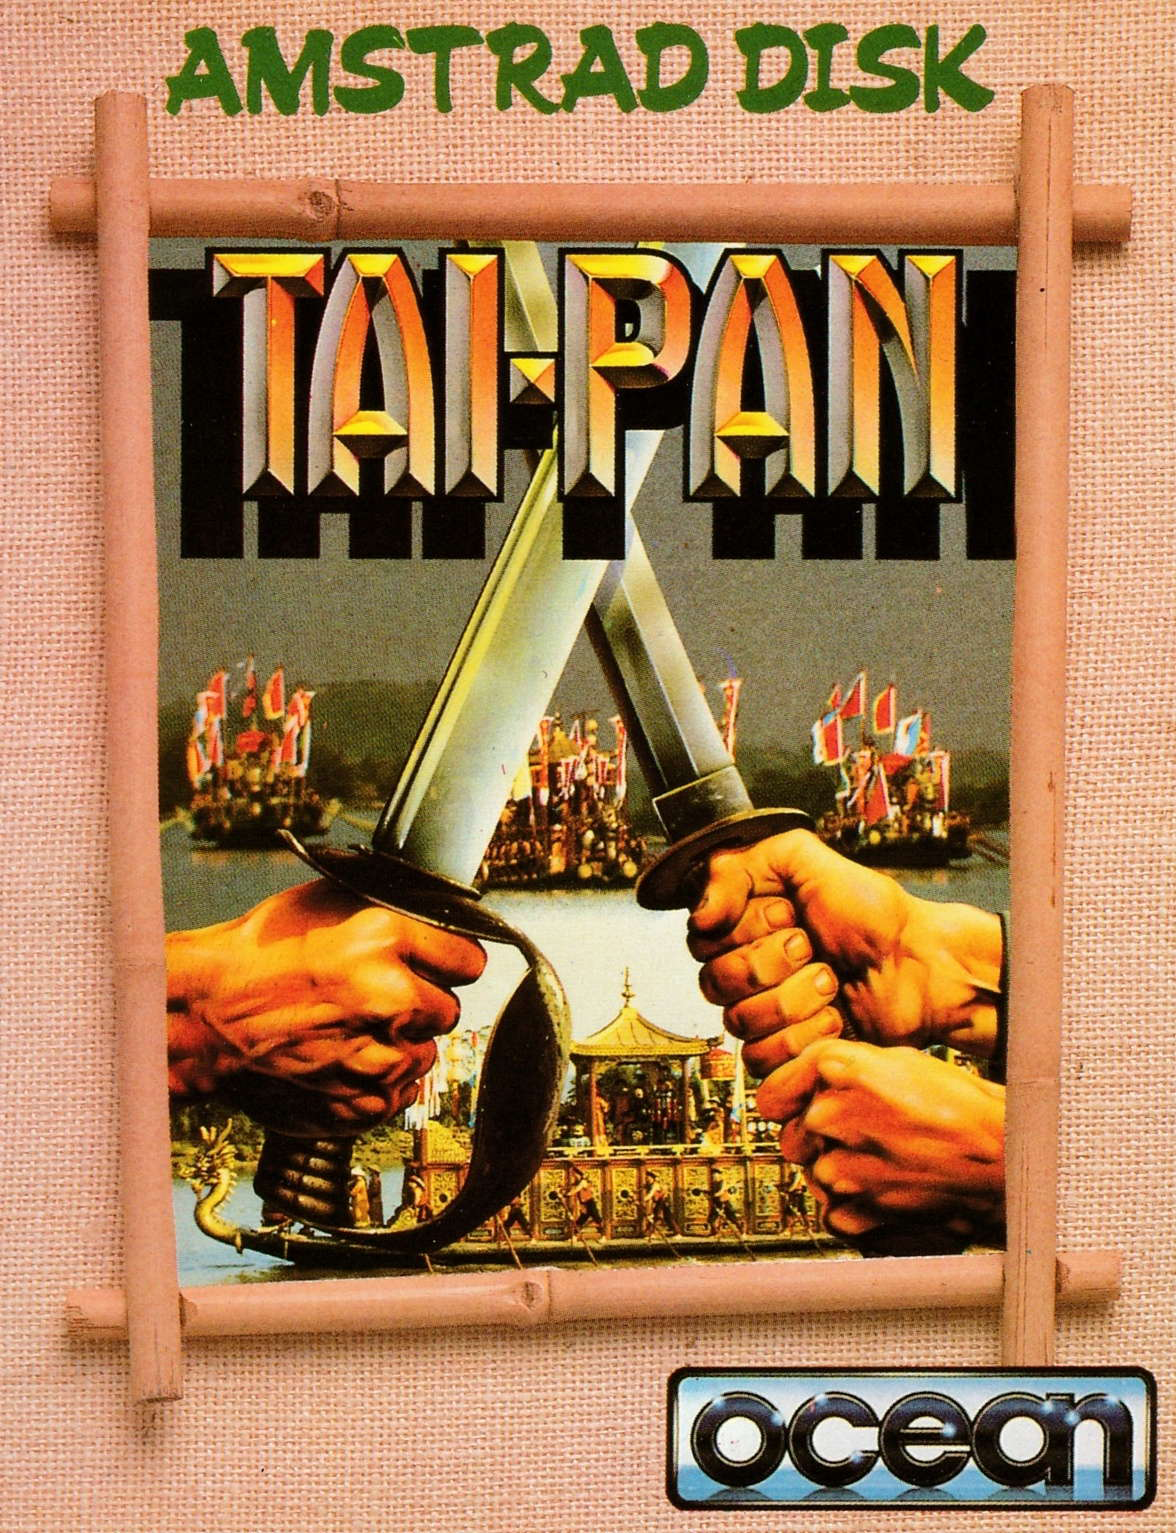 screenshot of the Amstrad CPC game Tai-Pan by GameBase CPC